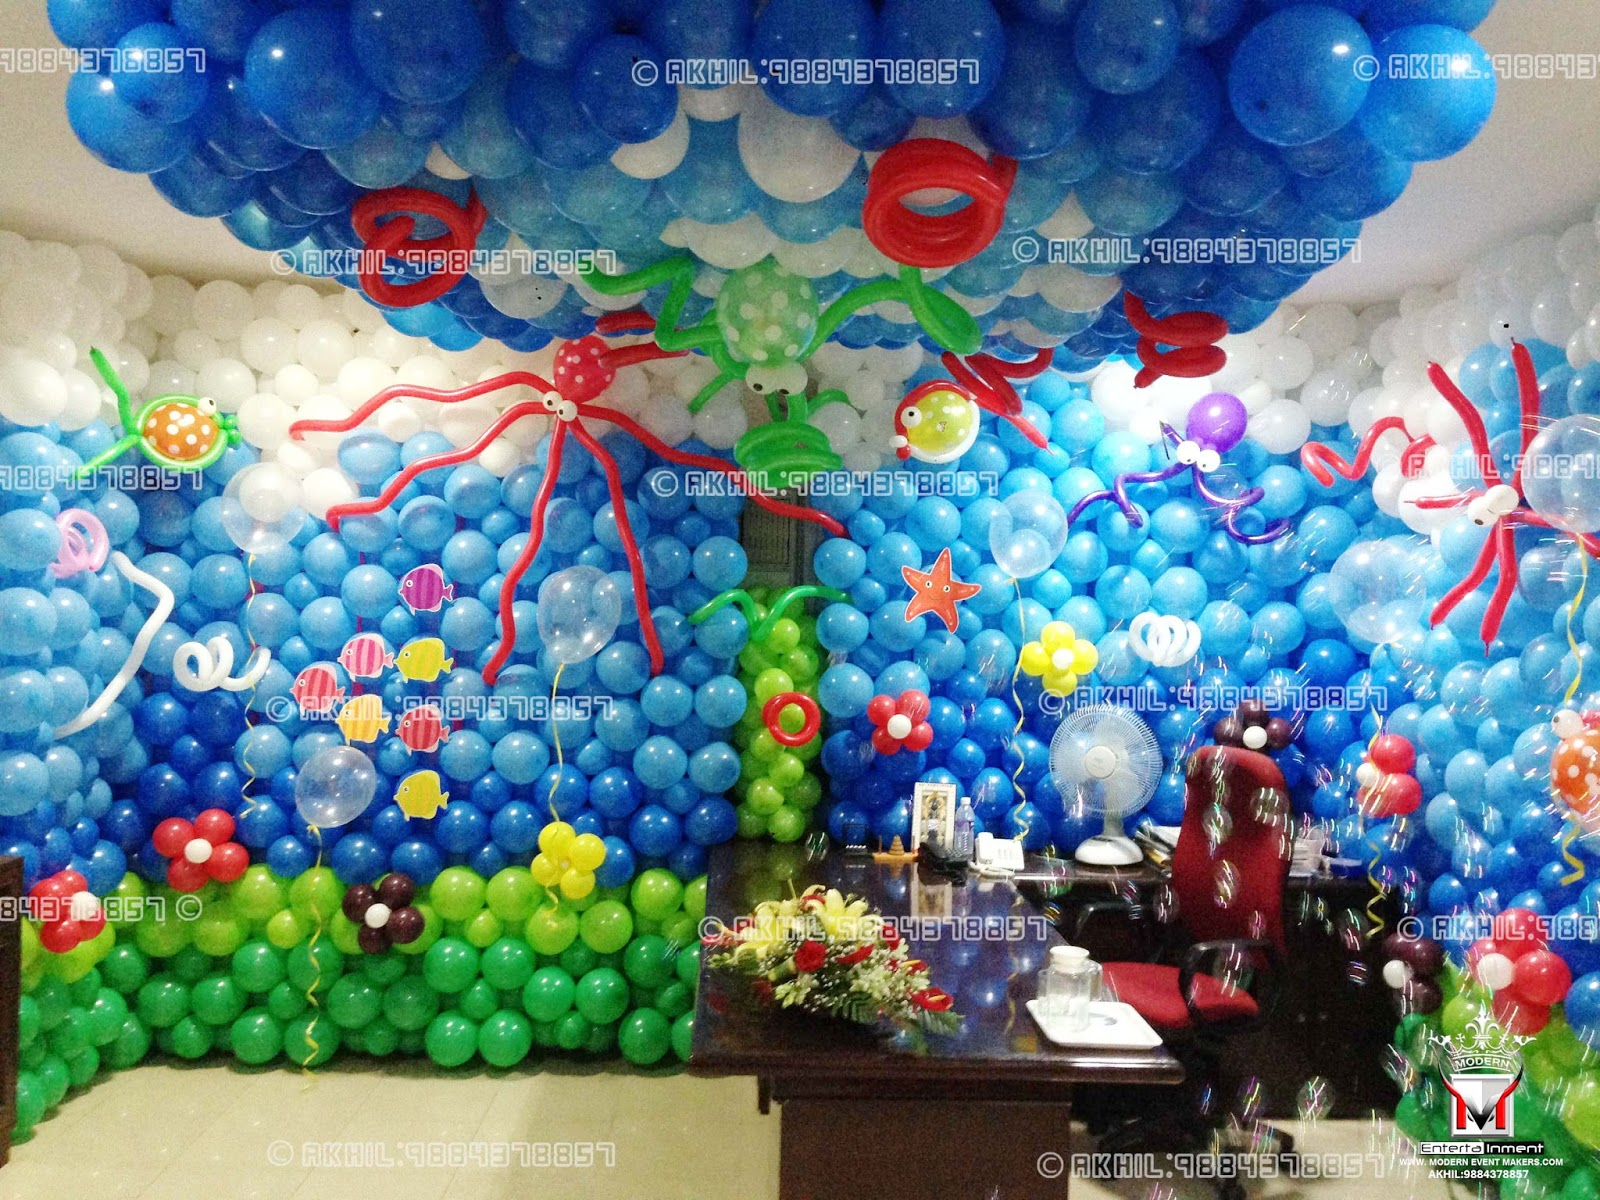 A top class balloon decorators in chennai akhil 9884378857 for Balloon decoration images party